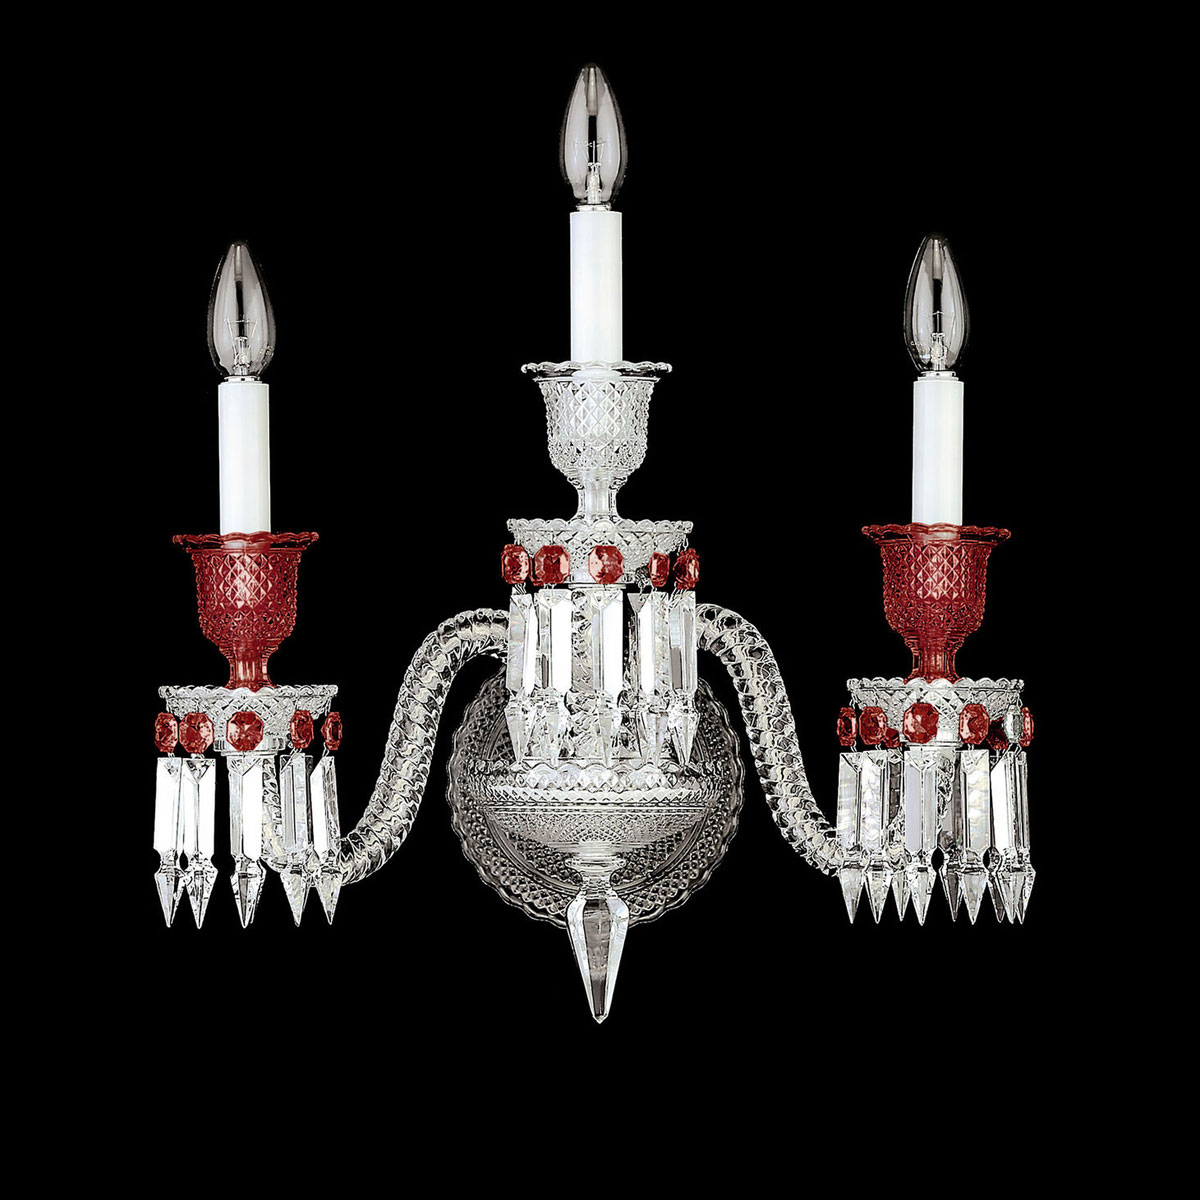 Baccarat Crystal, Zenith 3 Light Wall Crystal Sconce, Clear and Red